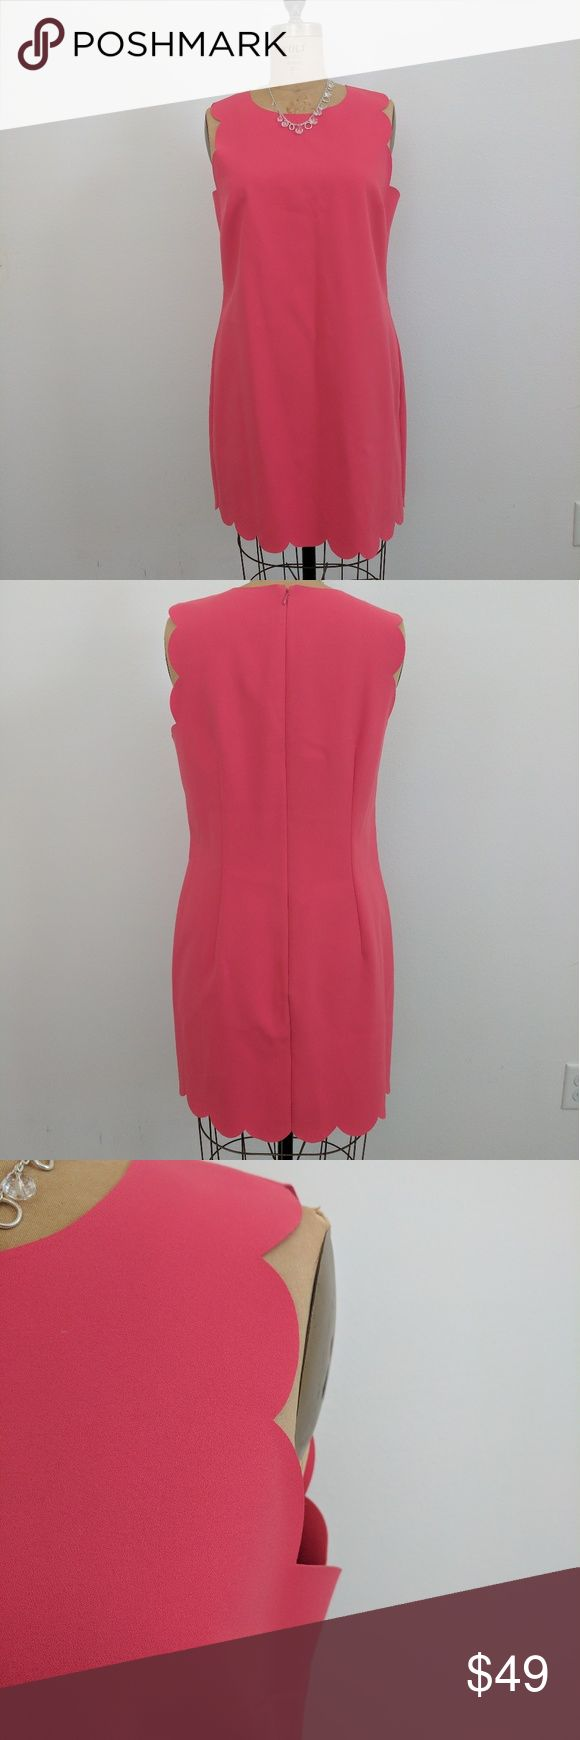 J. Crew pink dress Excellent condition, no wear, no stains. It's like NWOT. Pink ruffle bottom, sleeves pink dress from J.Crew. size 12. Midi length.  62% polyester, 33% viscose, 5% spandex. Beautiful dress for summer! J. Crew Dresses Midi